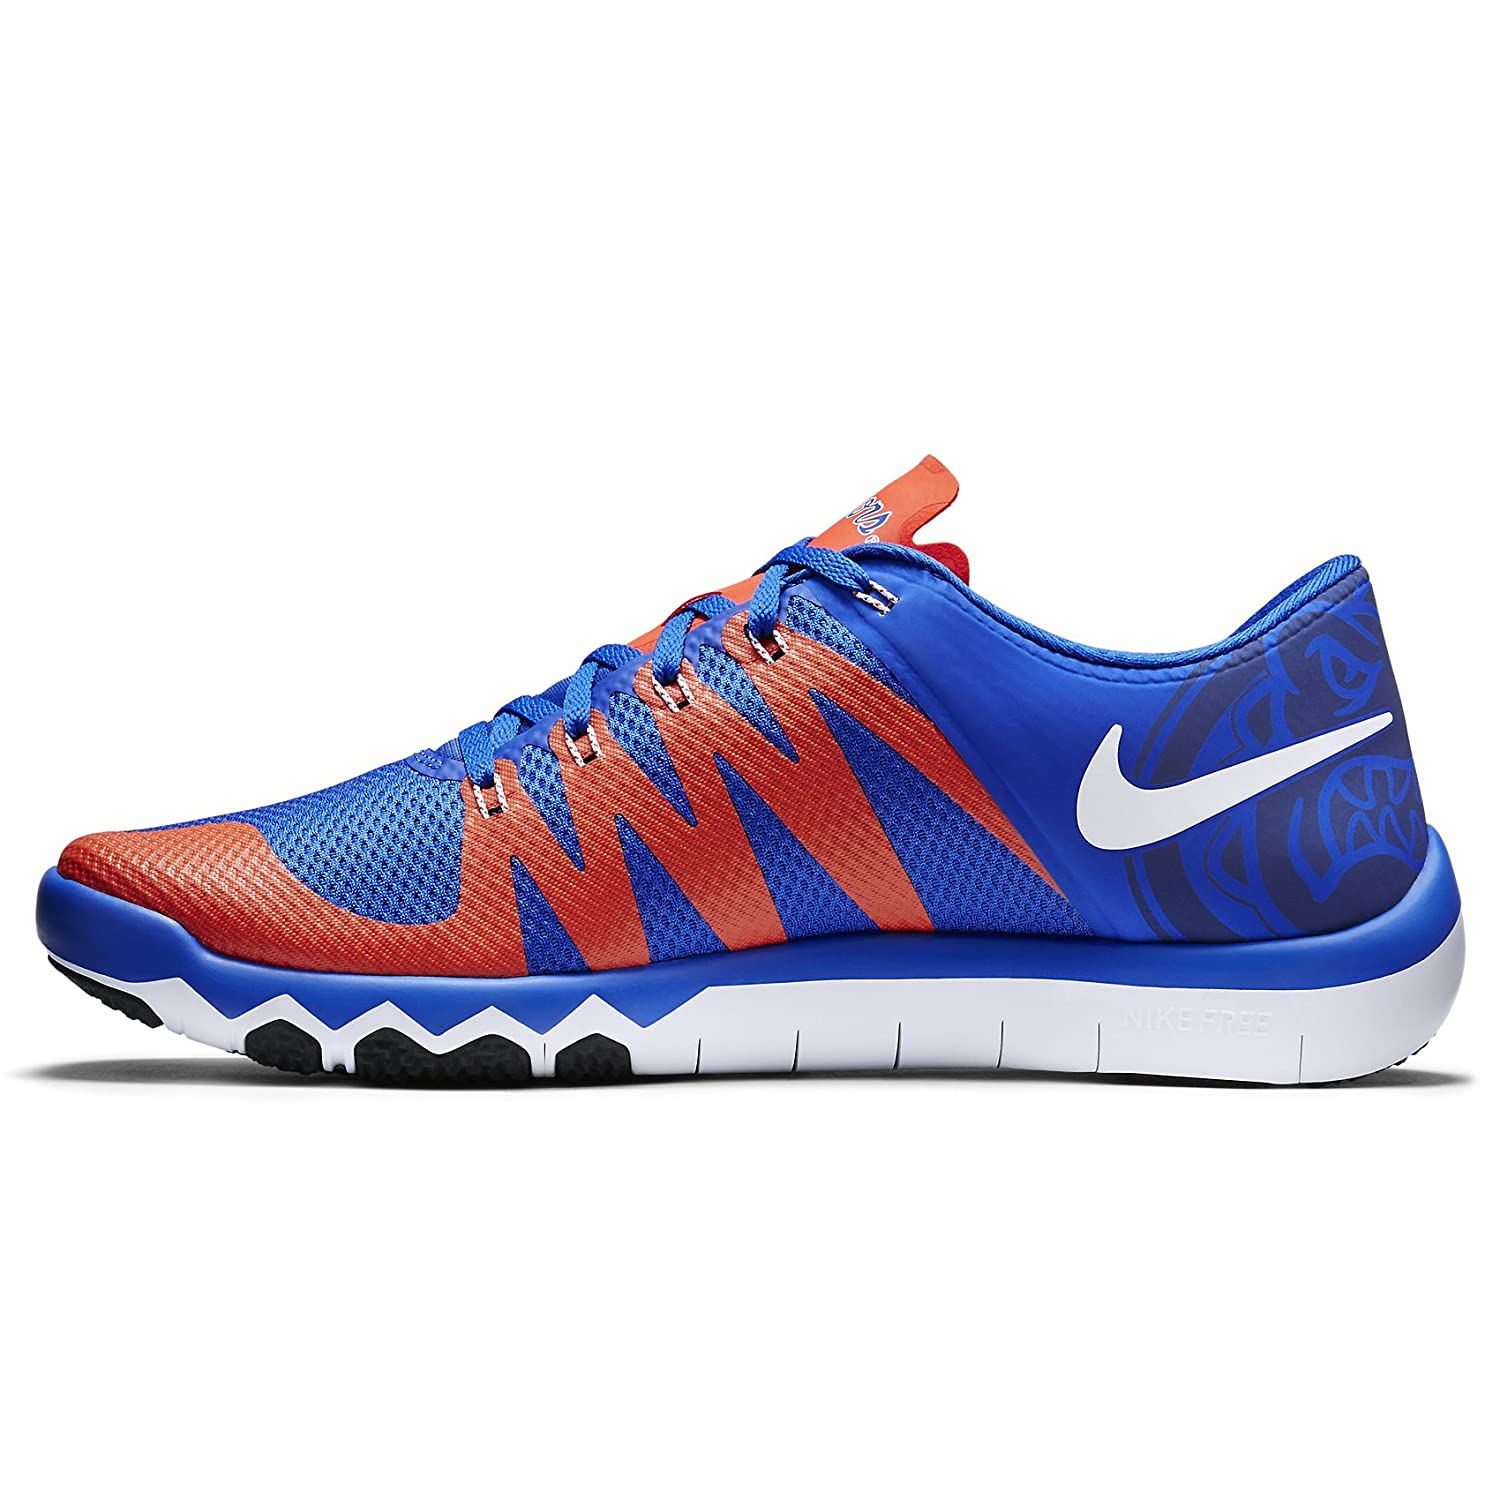 57d9749a035e NIKE Free Trainer 5.0 V6 AMP Florida Gators 723939-481 Royal Team Orange  Men s Shoes (Size 13)  Amazon.co.uk  Shoes   Bags